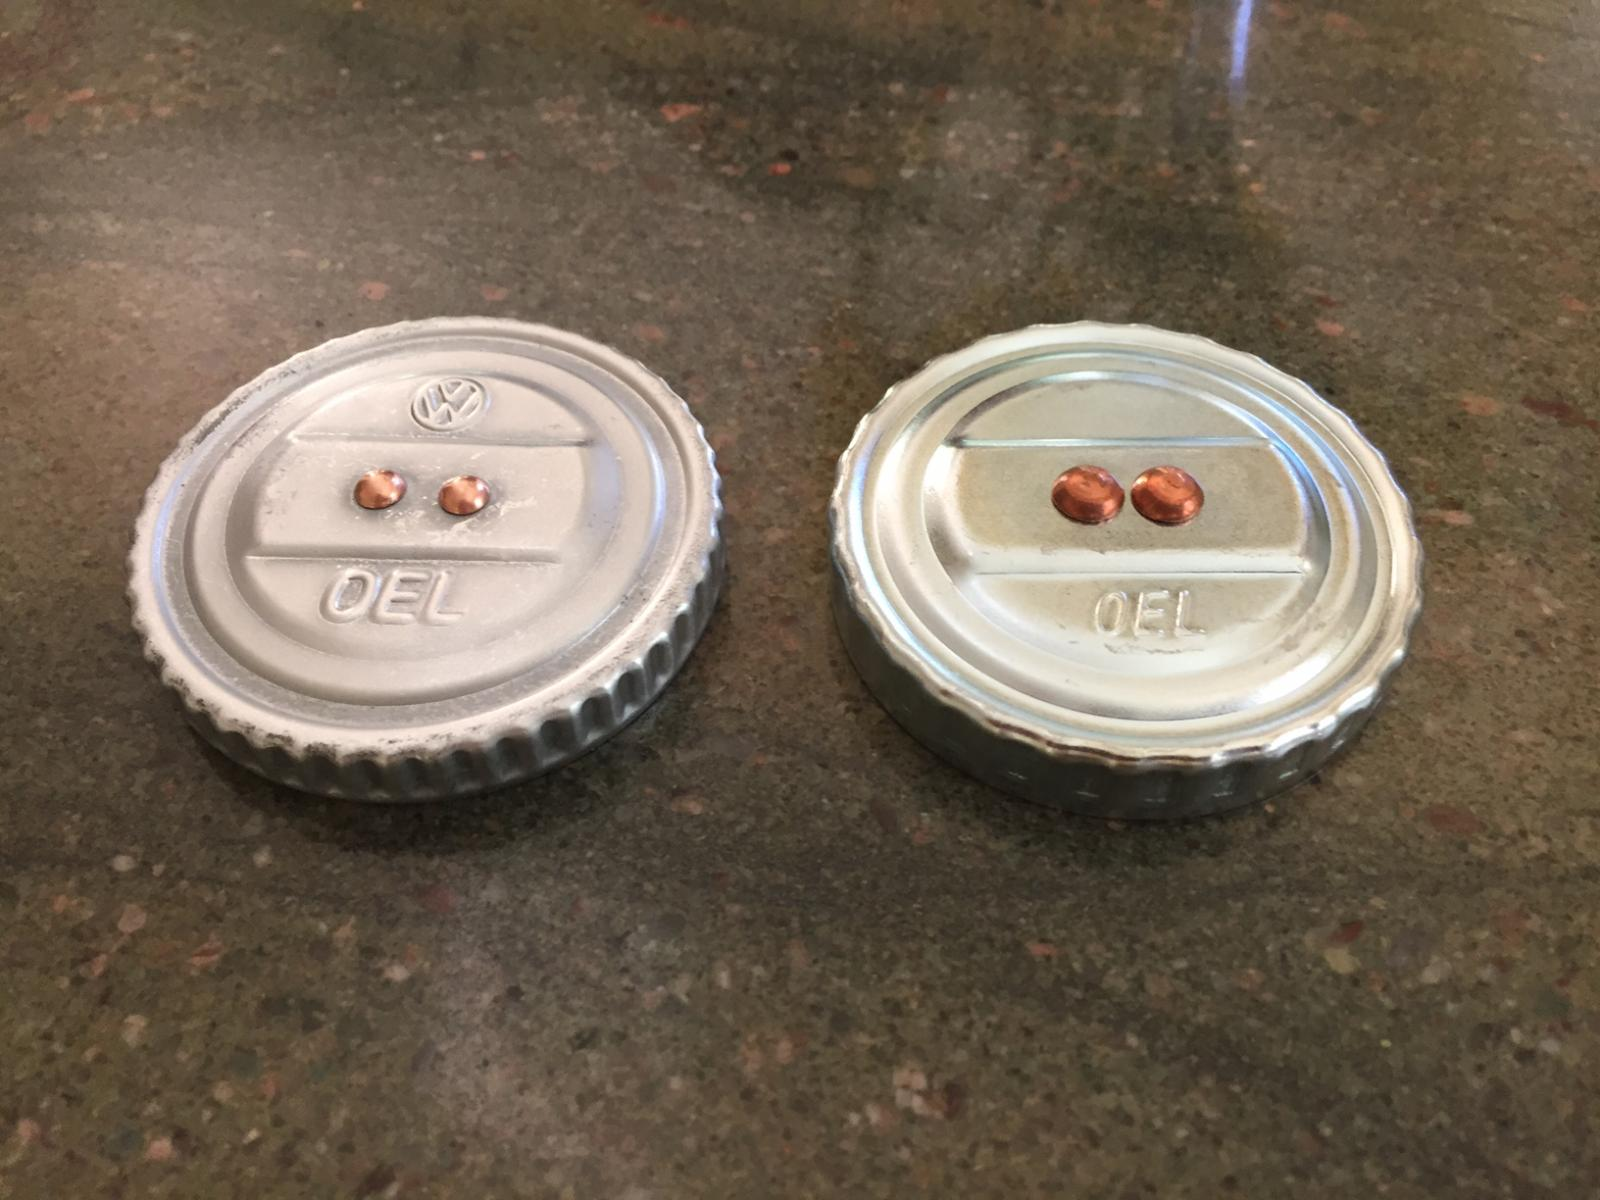 NOS vs repro oil caps